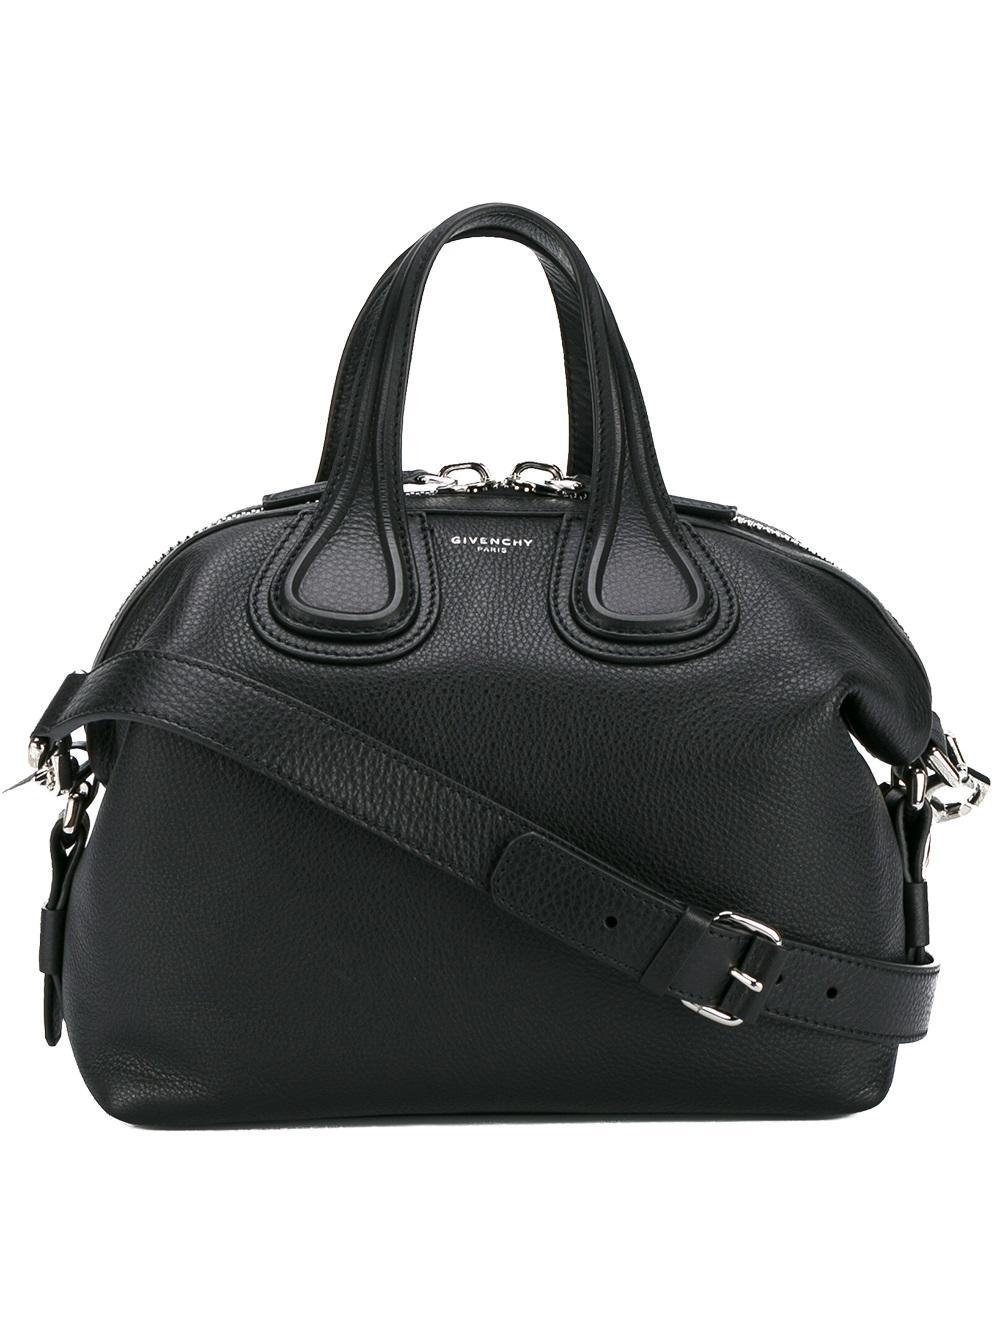 a582e7df7462 Lyst - Givenchy Nightingale Small Leather Shoulder Bag in Black